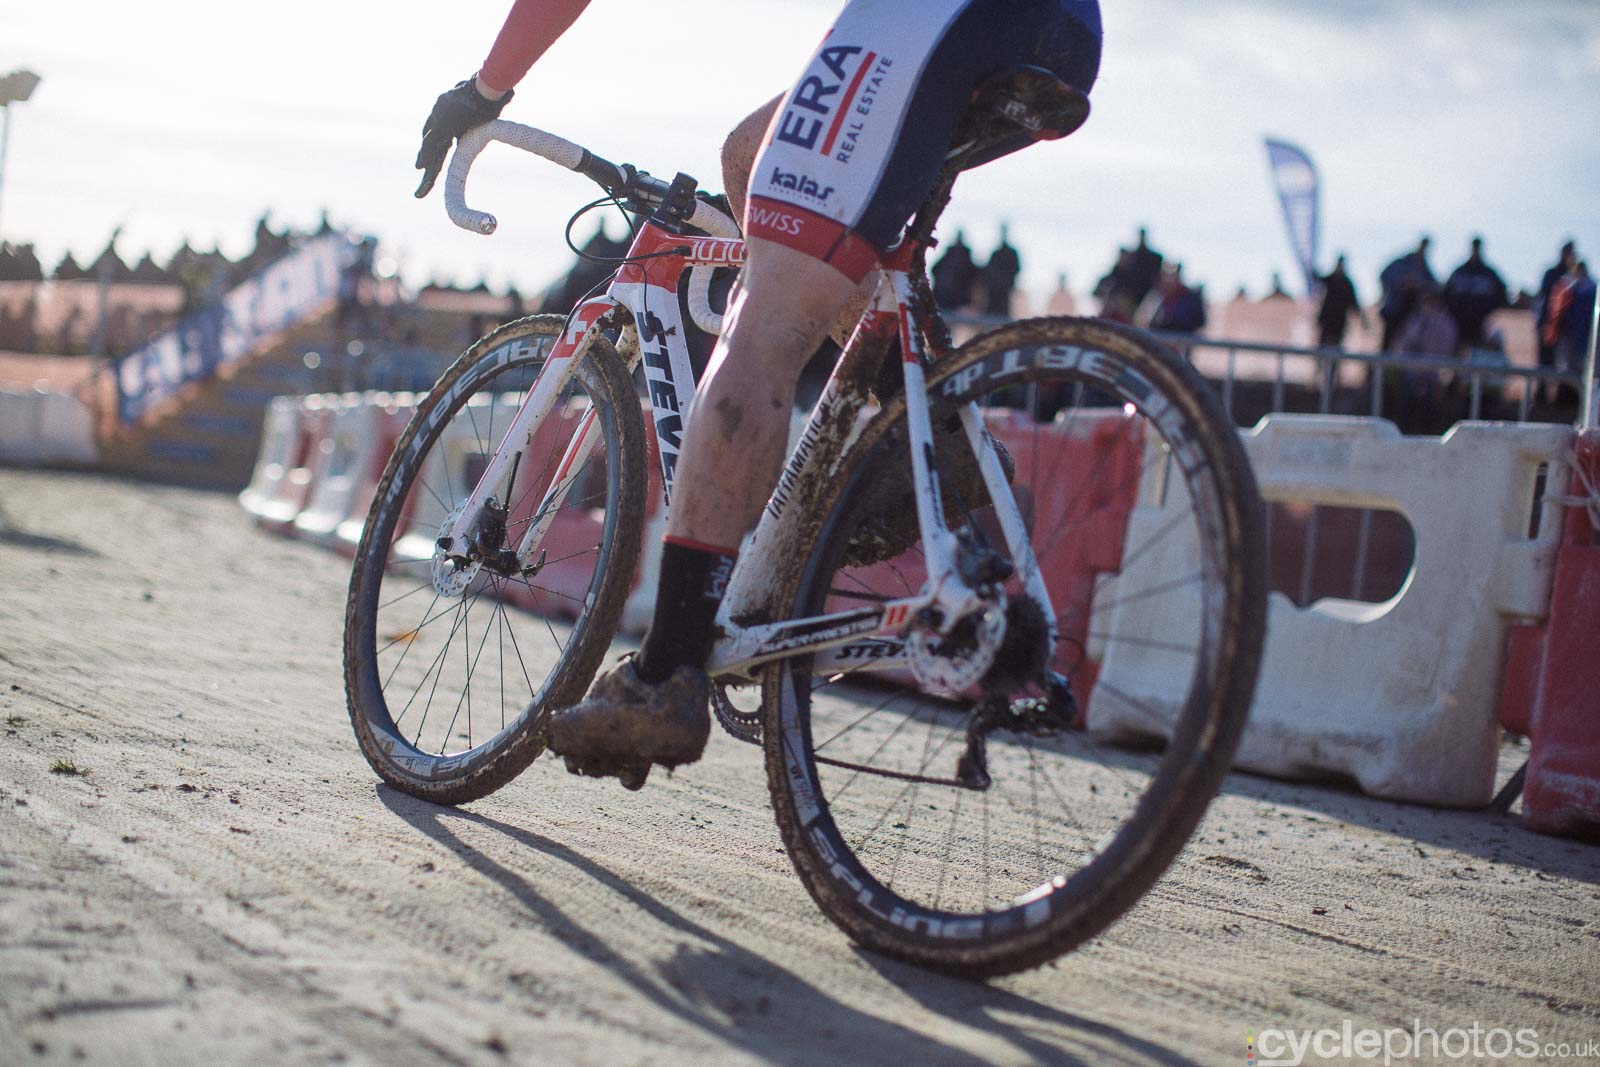 2016-cyclephotos-cyclocross-lignieres-153820-julien-taramarcaz